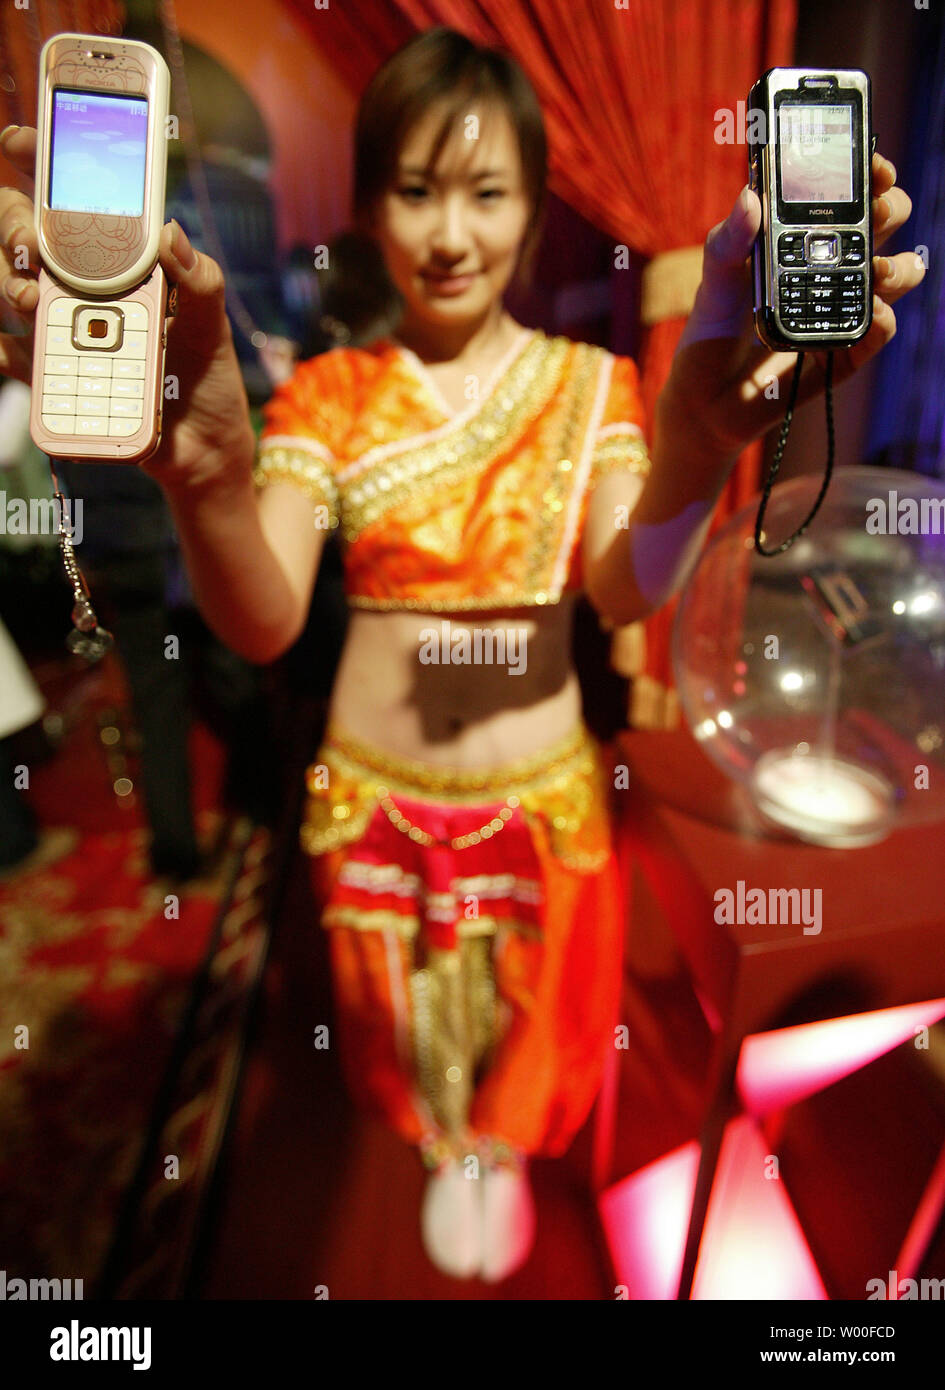 A Chinese model holds Nokia's 7373 (Left hand) and 7360 mobile phones on display at Nokia's 'Our Mobile Life 2007' conference in Beijing, China. on December 03, 2006. Nokia, the world's biggest cell- phone maker, expects the number of handset users in China to rise 11 percent to more than 500 million in 2007, boosted by growth in rural areas.  The country will add a further 160 million users from next year until 2010, Espoo, Finland-based Nokia said in a statement issued in Beijing today. China had 449 million users as of October, more than the populations of Japan and the U.S. combined.  (UPI - Stock Image